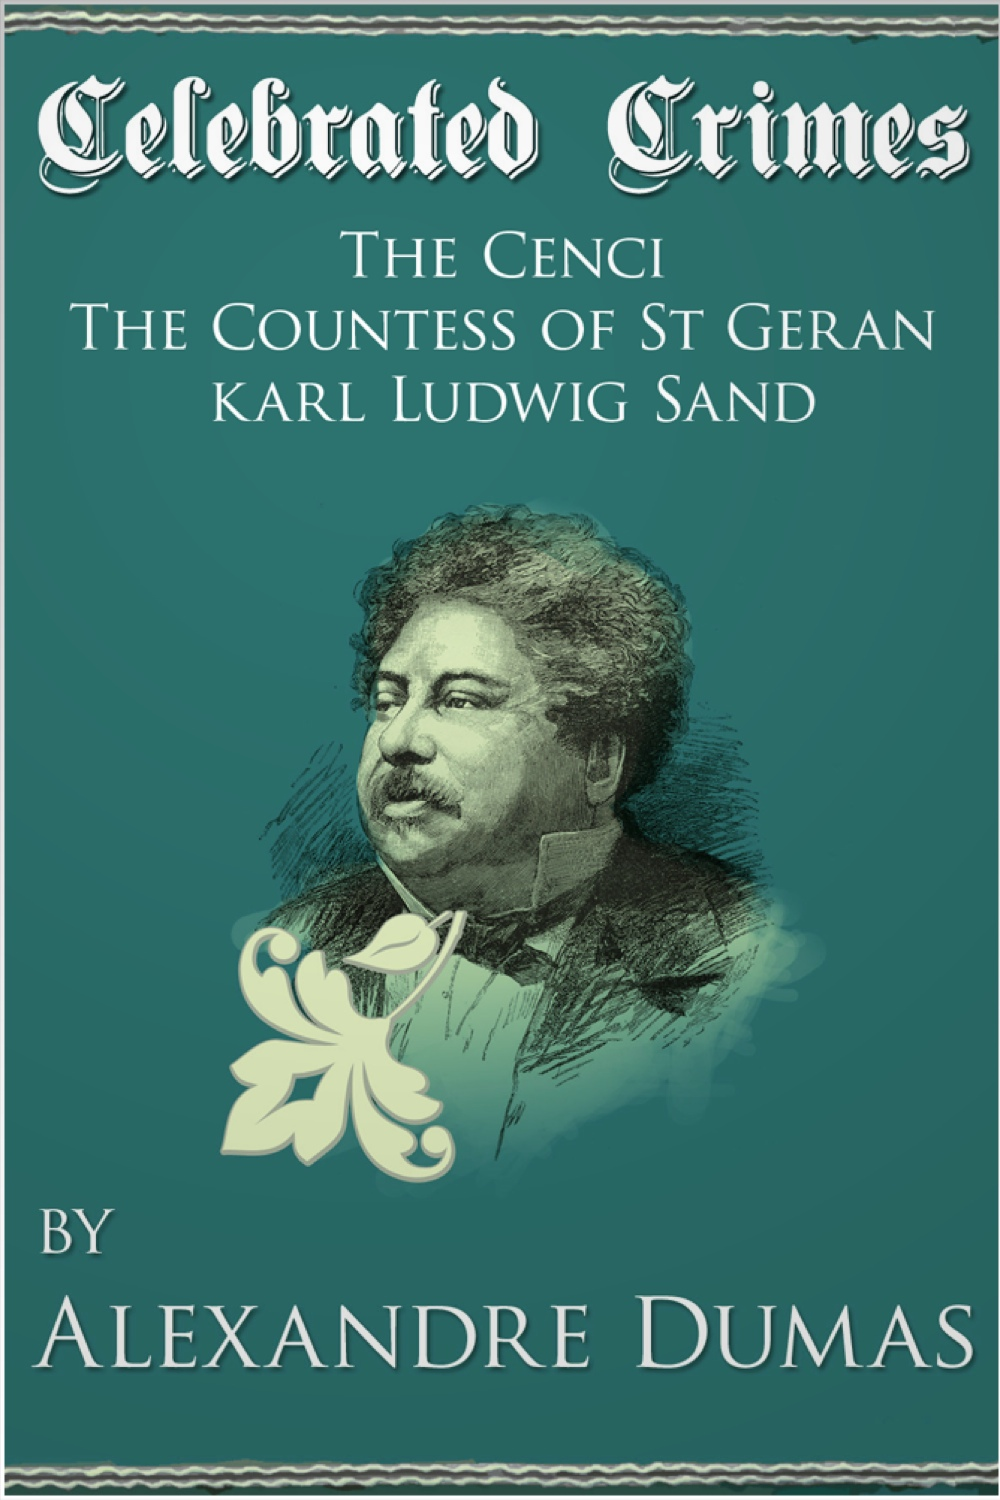 Celebrated Crimes 'The Cenci', 'The Countess of St Geran' and 'Karl Ludwig Sand' By: Alexandre Dumas